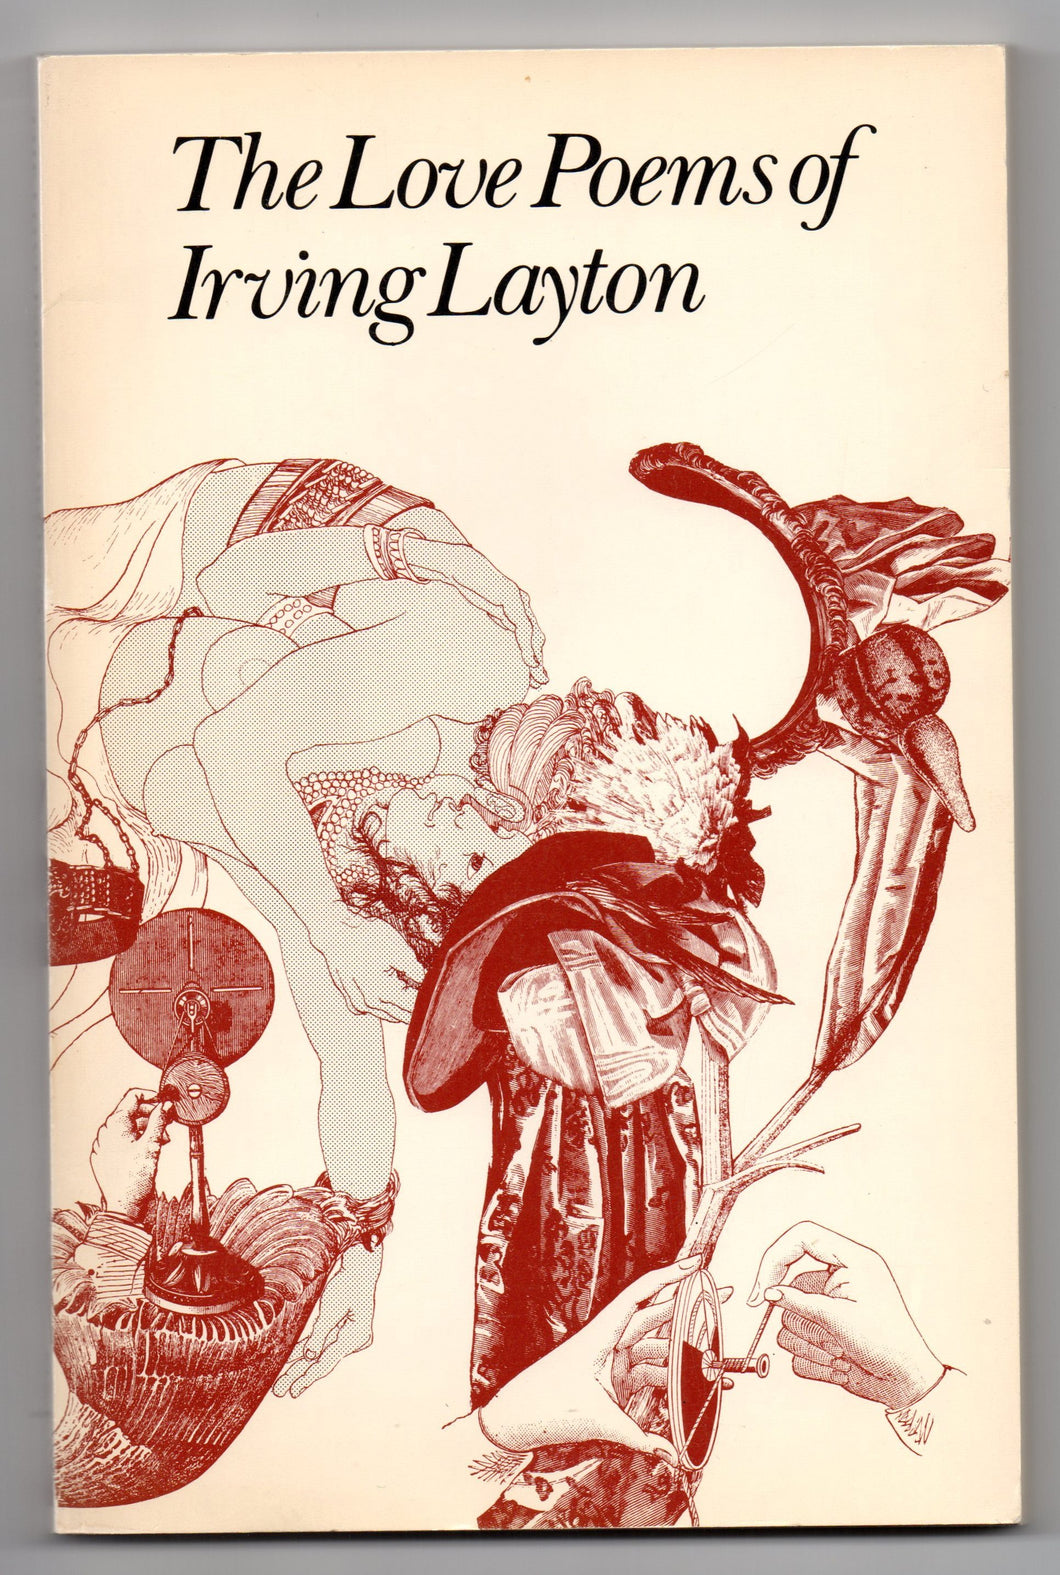 The Love Poems of Irving Layton